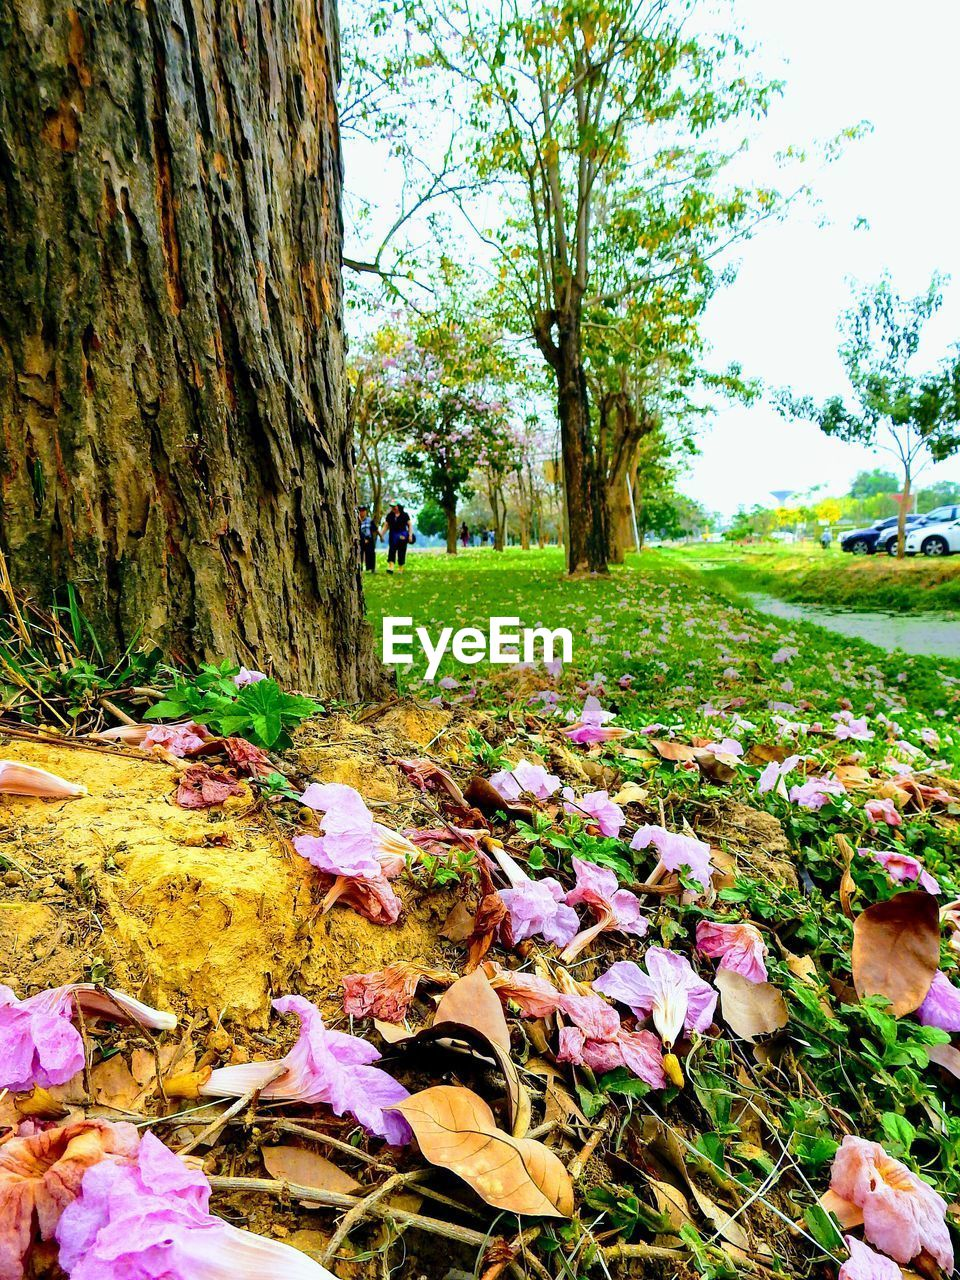 nature, real people, tree, growth, flower, beauty in nature, day, outdoors, grass, field, one person, leaf, men, tranquility, tree trunk, lifestyles, women, fragility, freshness, flower head, crocus, people